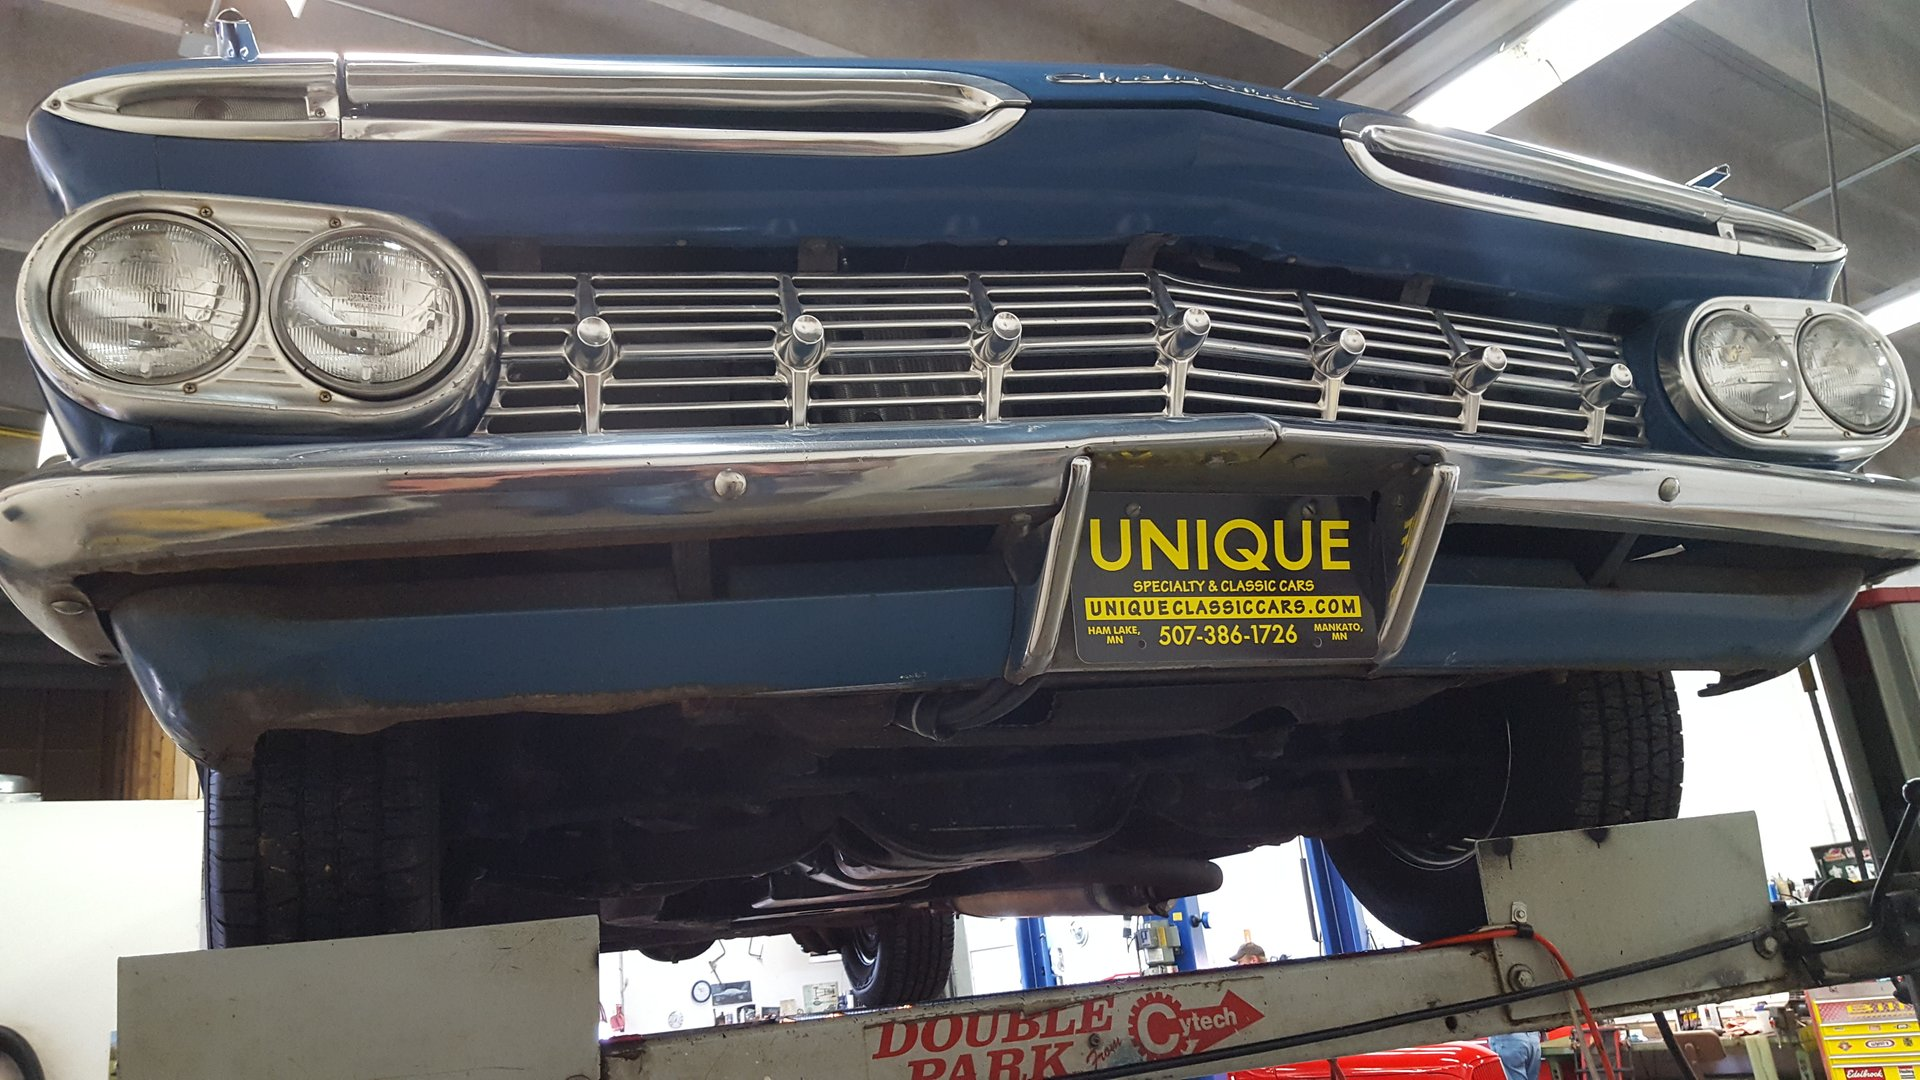 1959 Chevrolet Impala 4 Door Sedan for sale #88406 | MCG